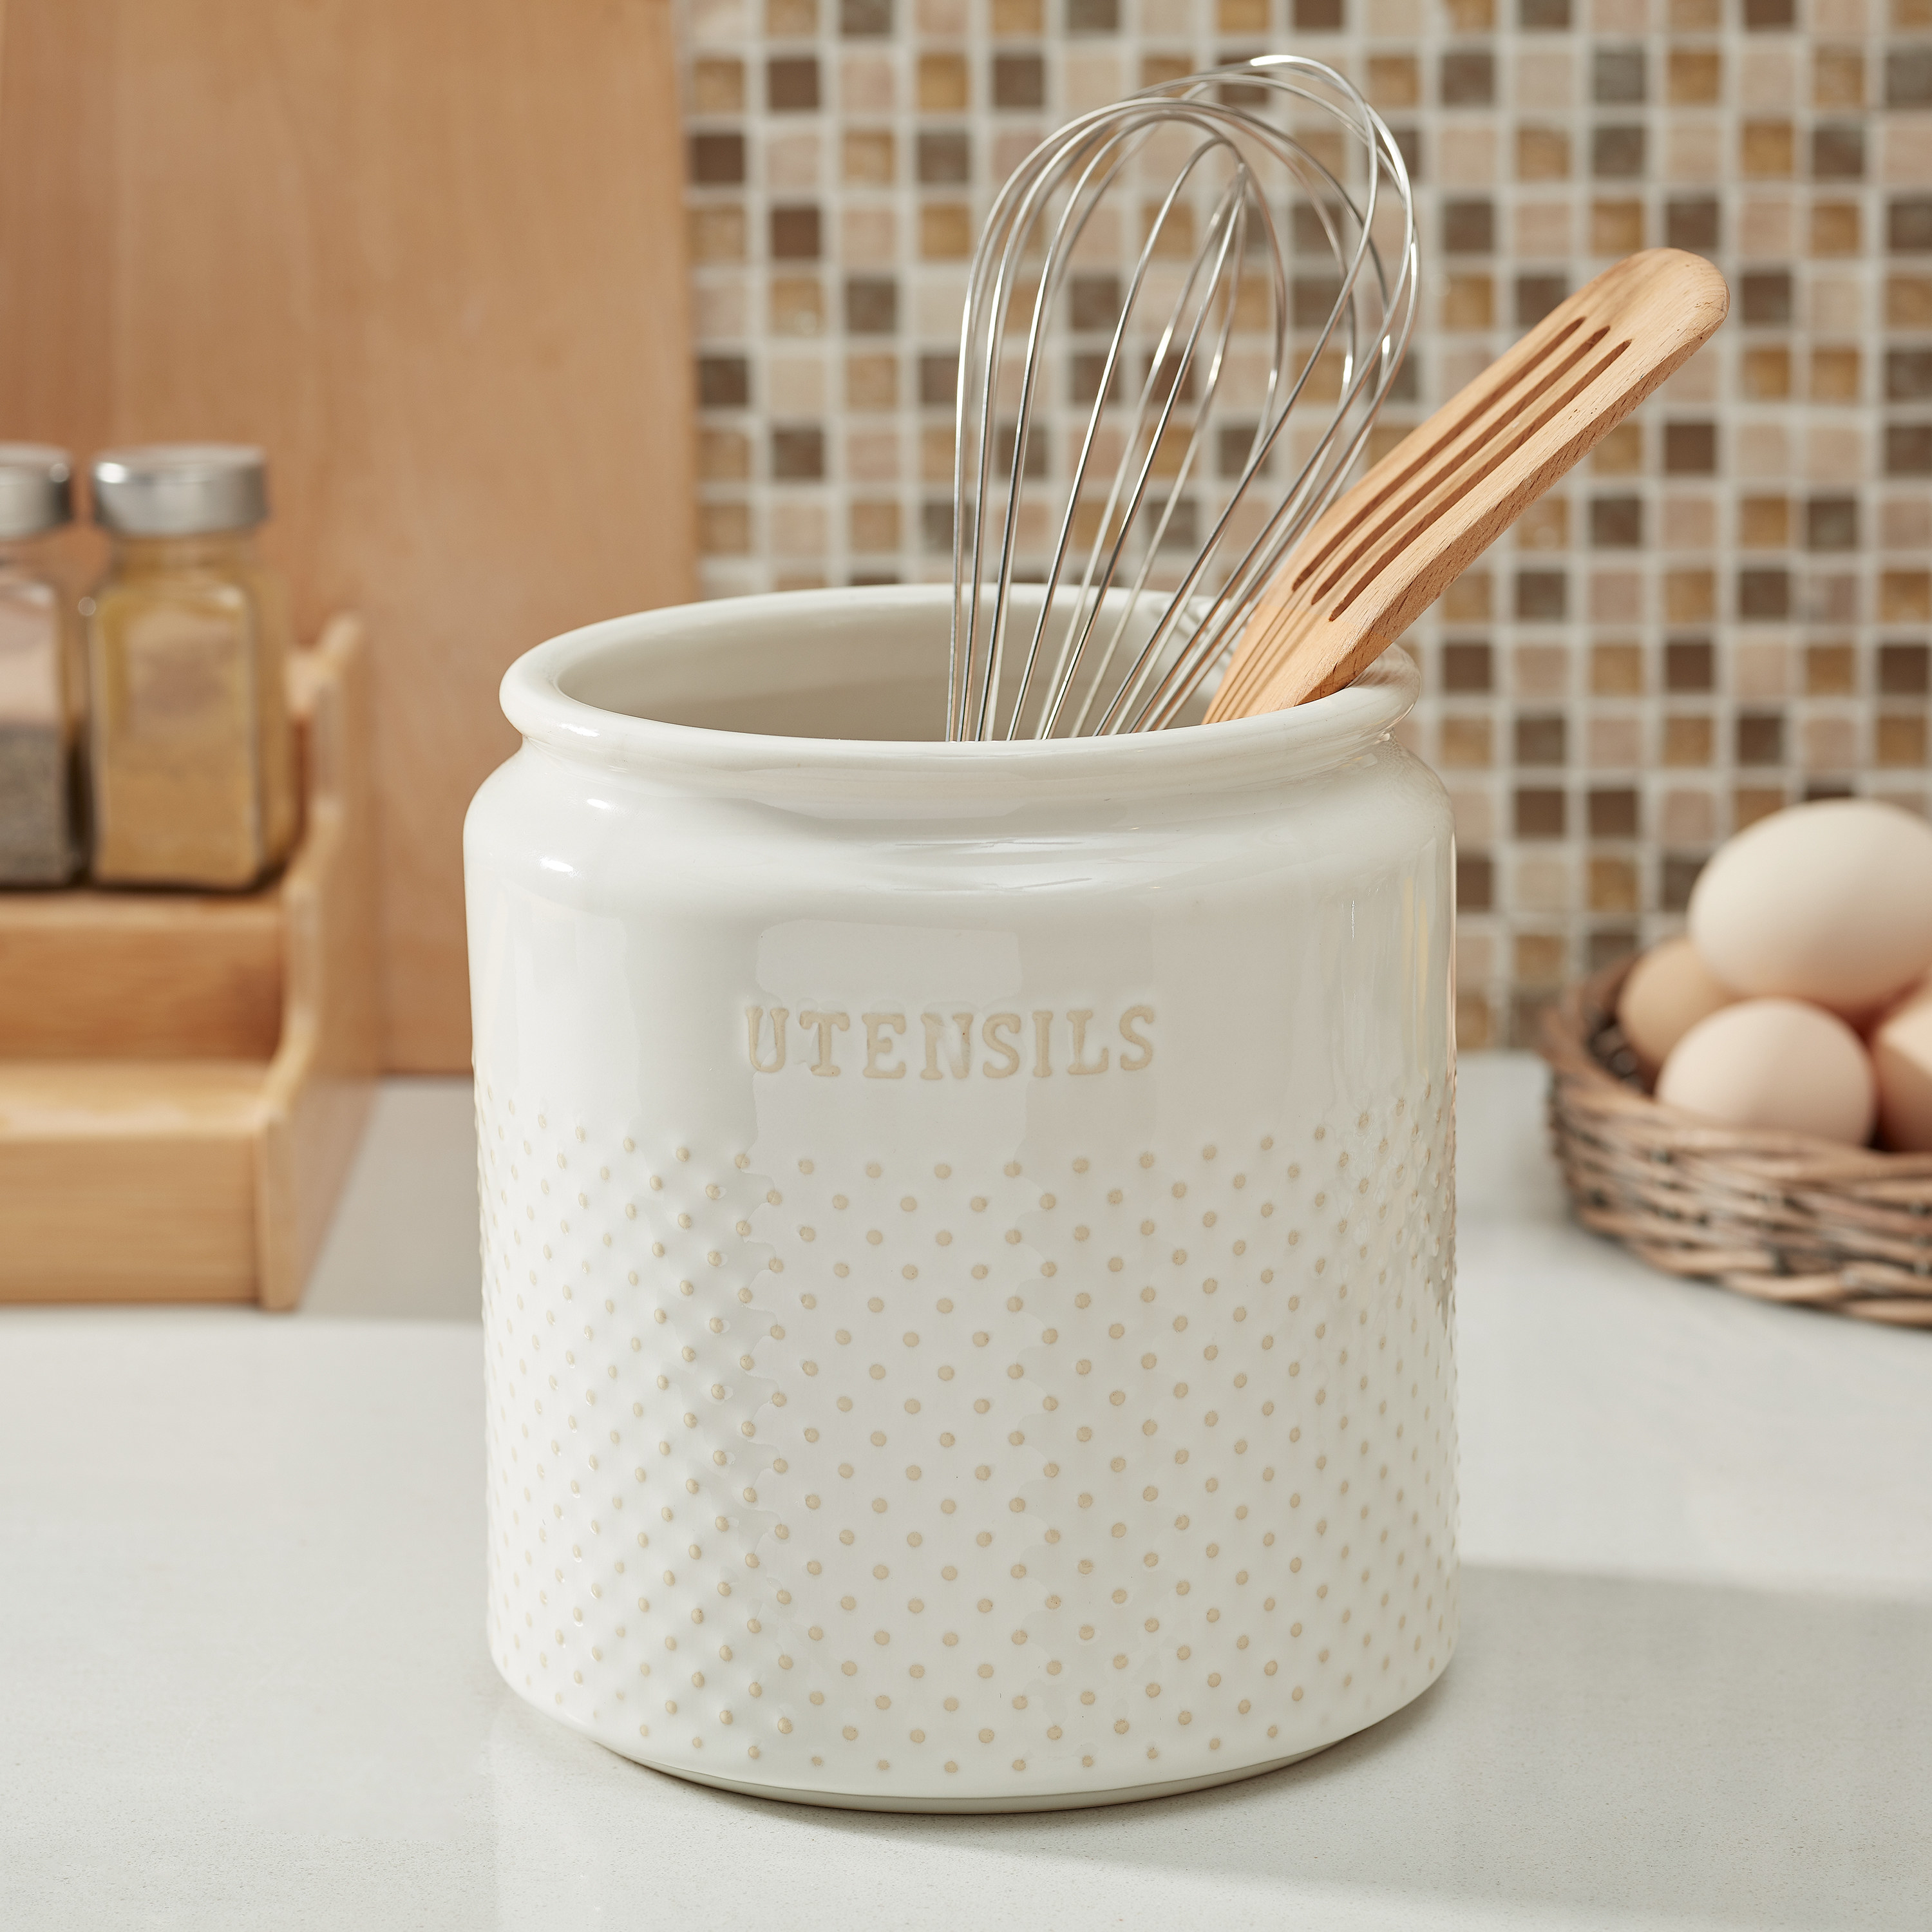 """white dotted ceramic utensil holder with """"utensils"""" printed on the front, on a counter"""